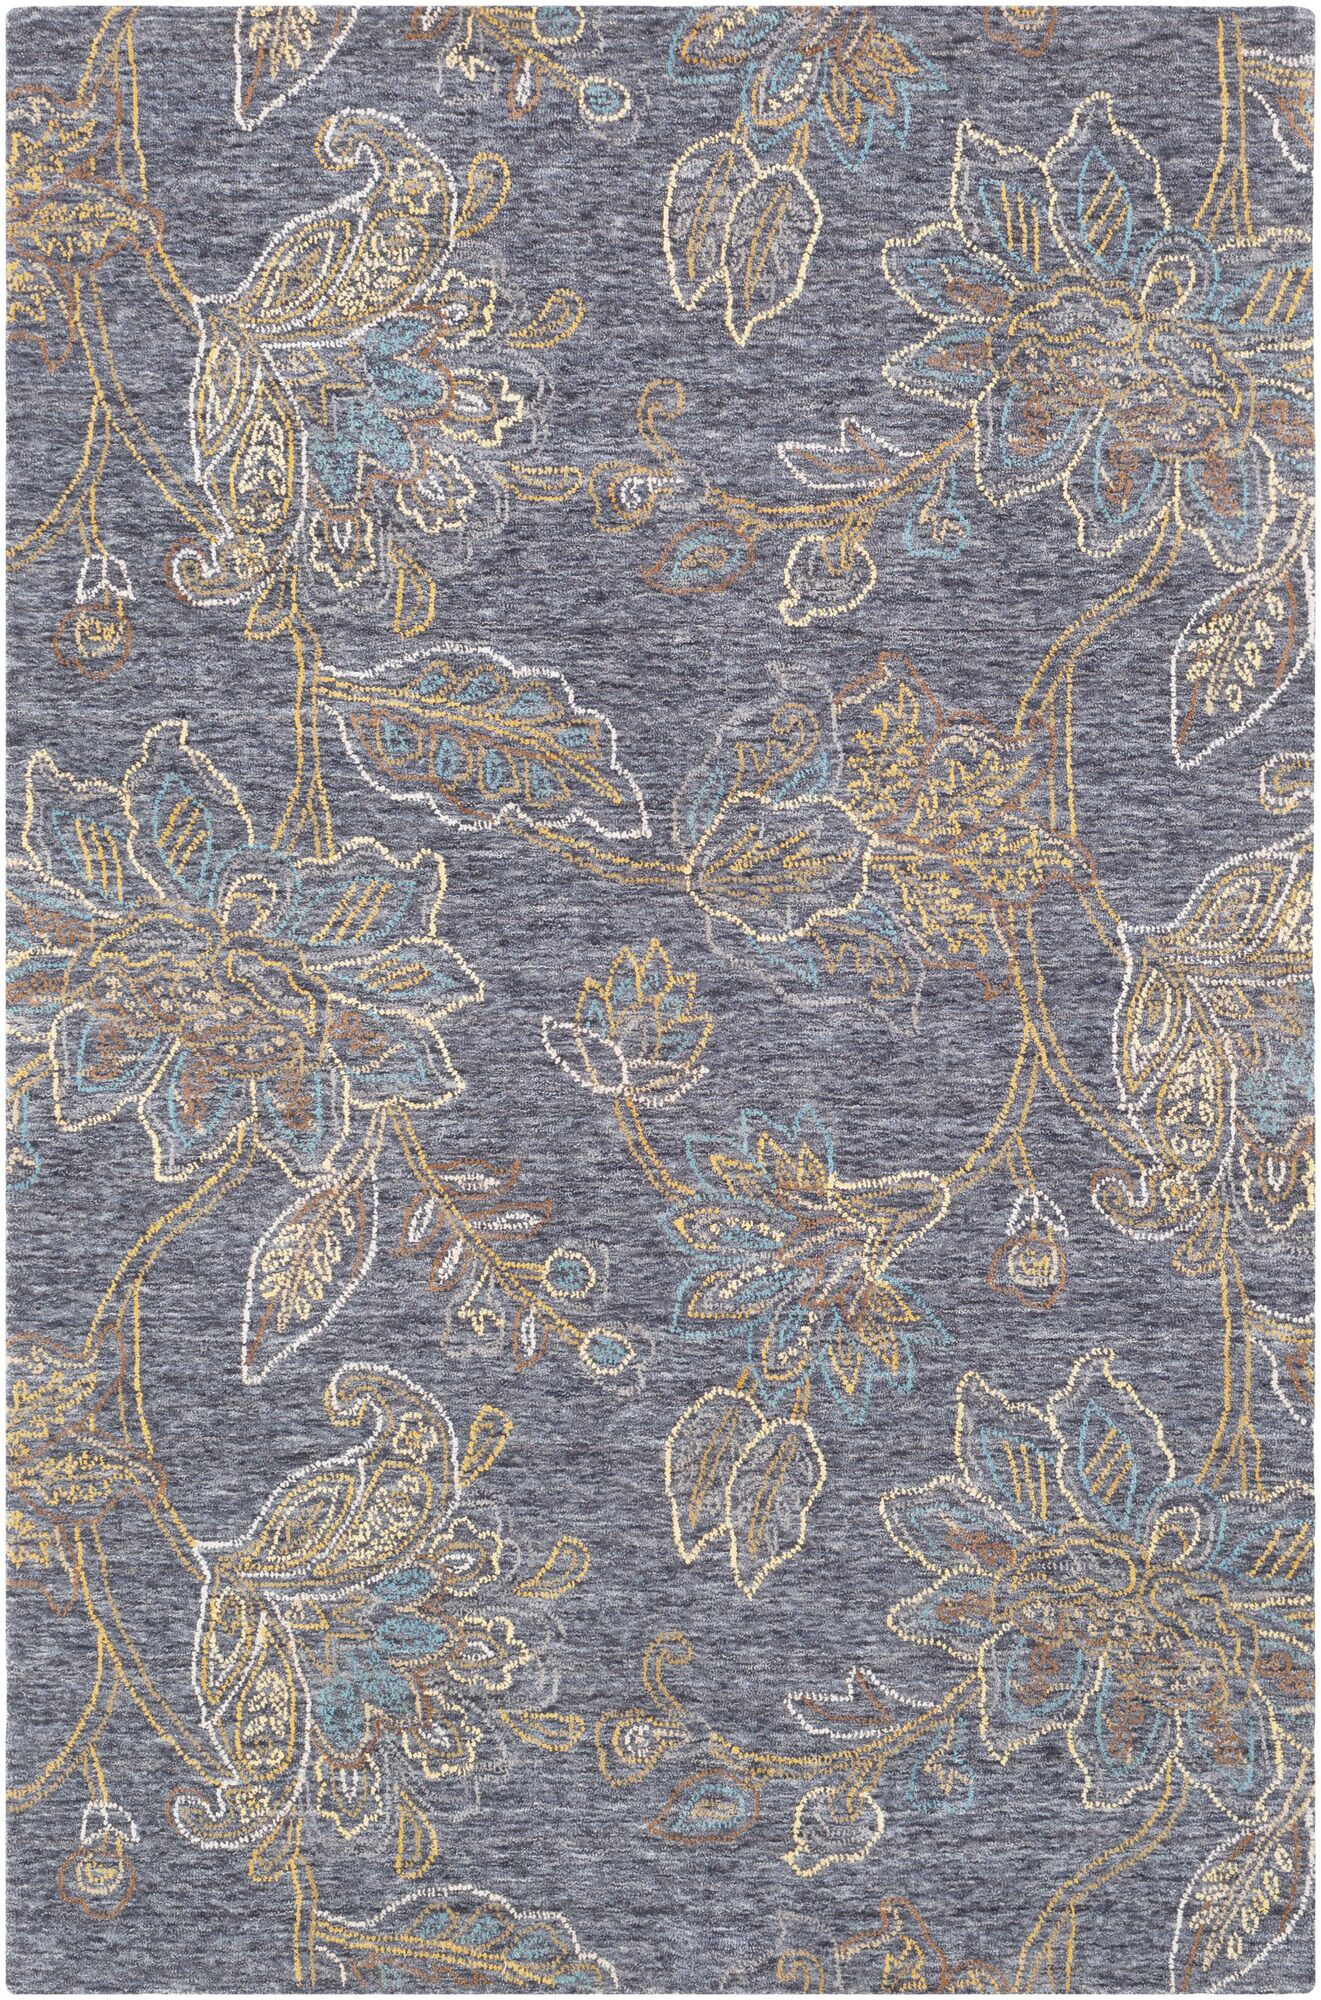 Arata Floral-Hand Tufted Wool Blue Area Rug Rug Size: Rectangle 8' x 10'